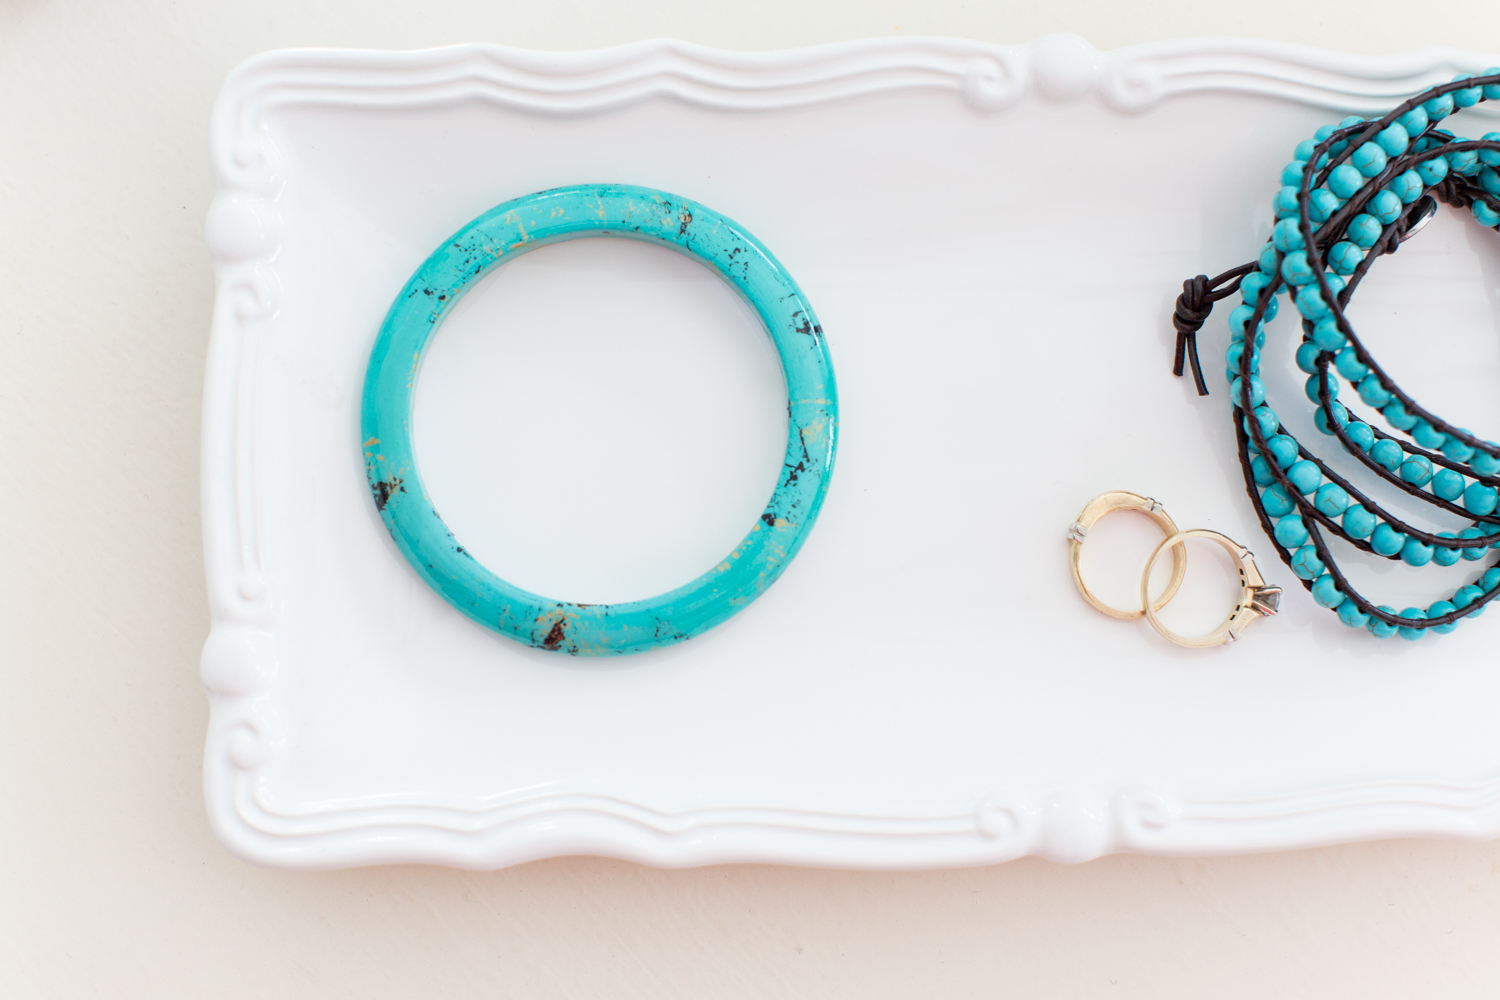 Faux turquoise painted wooden bracelet (1 of 1)